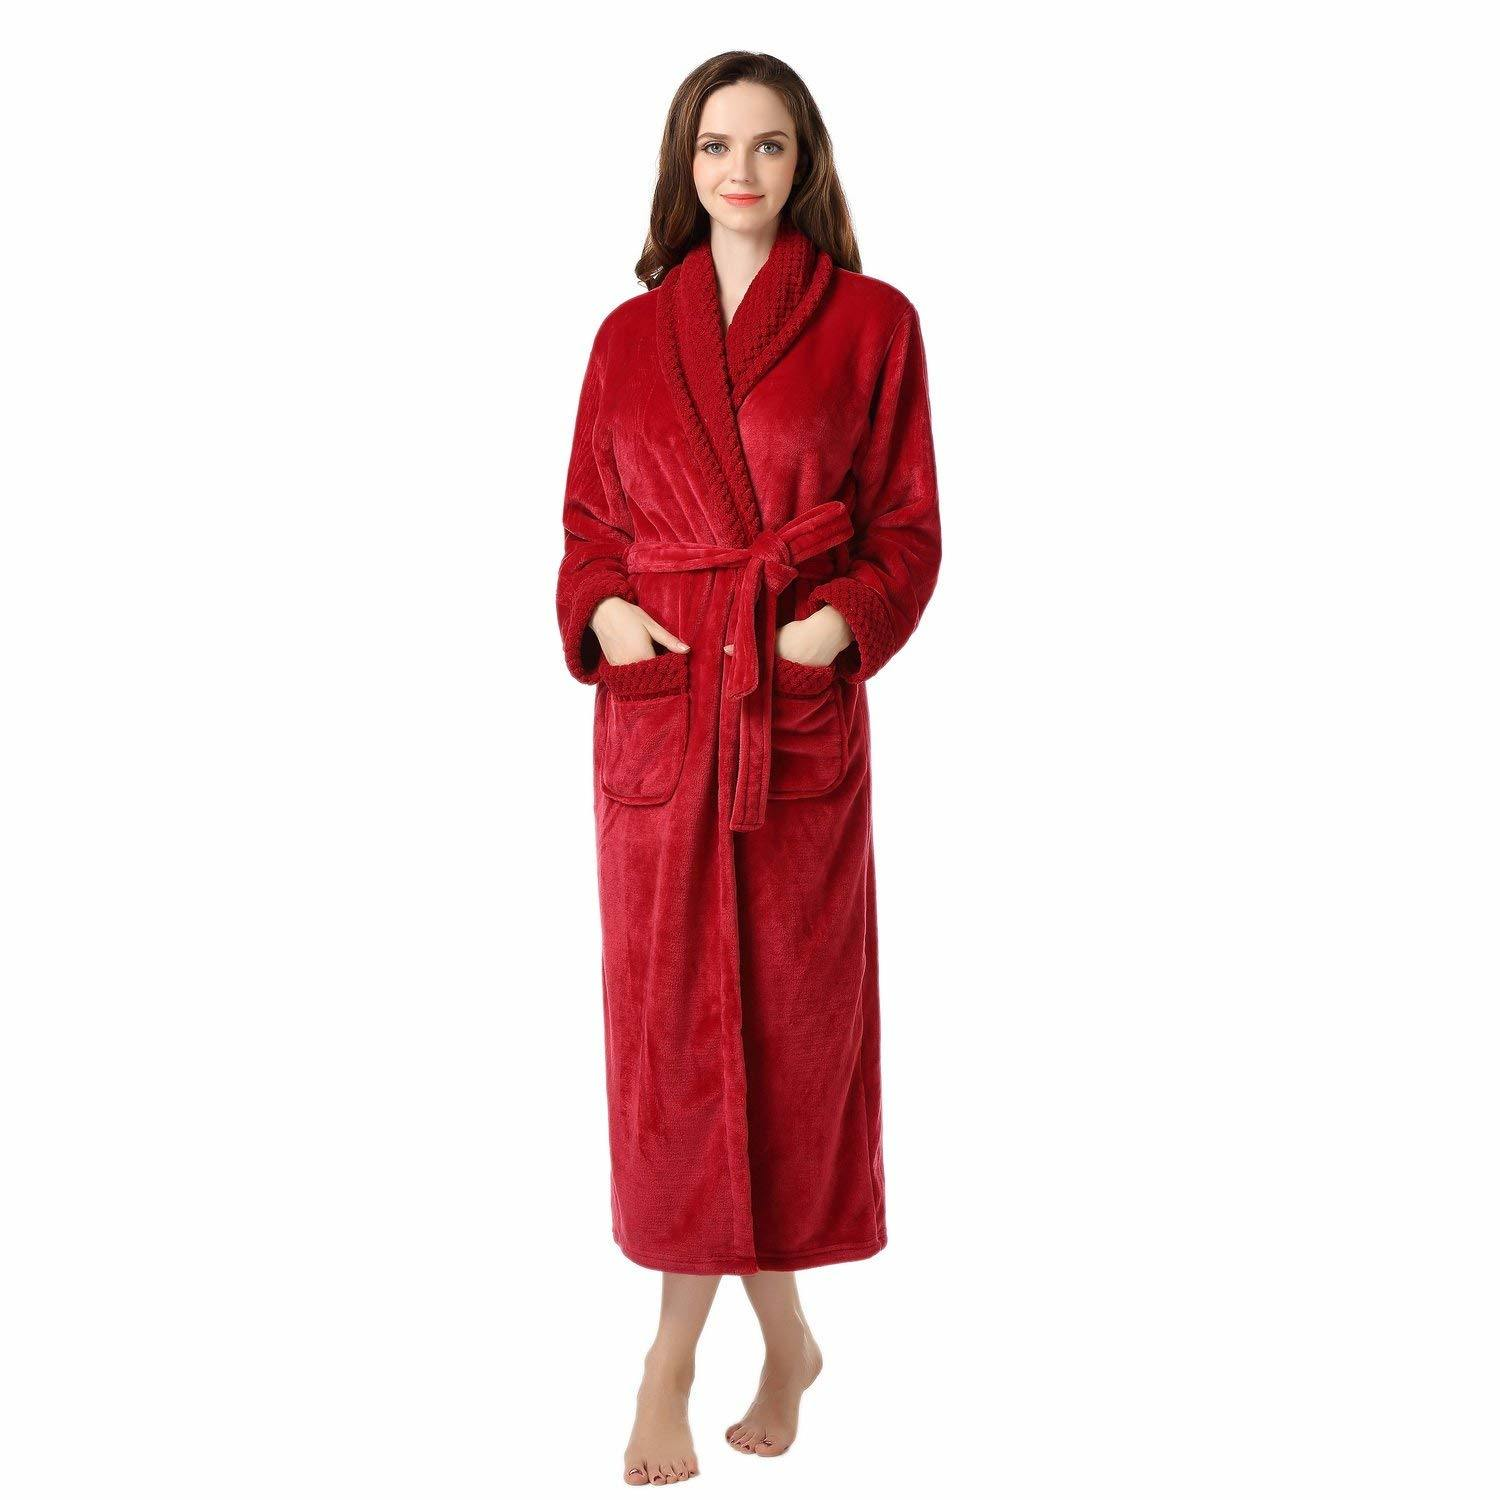 Womens Solid Color Homewear Fleece Plush Microfiber Bathrobe Robe pictures & photos